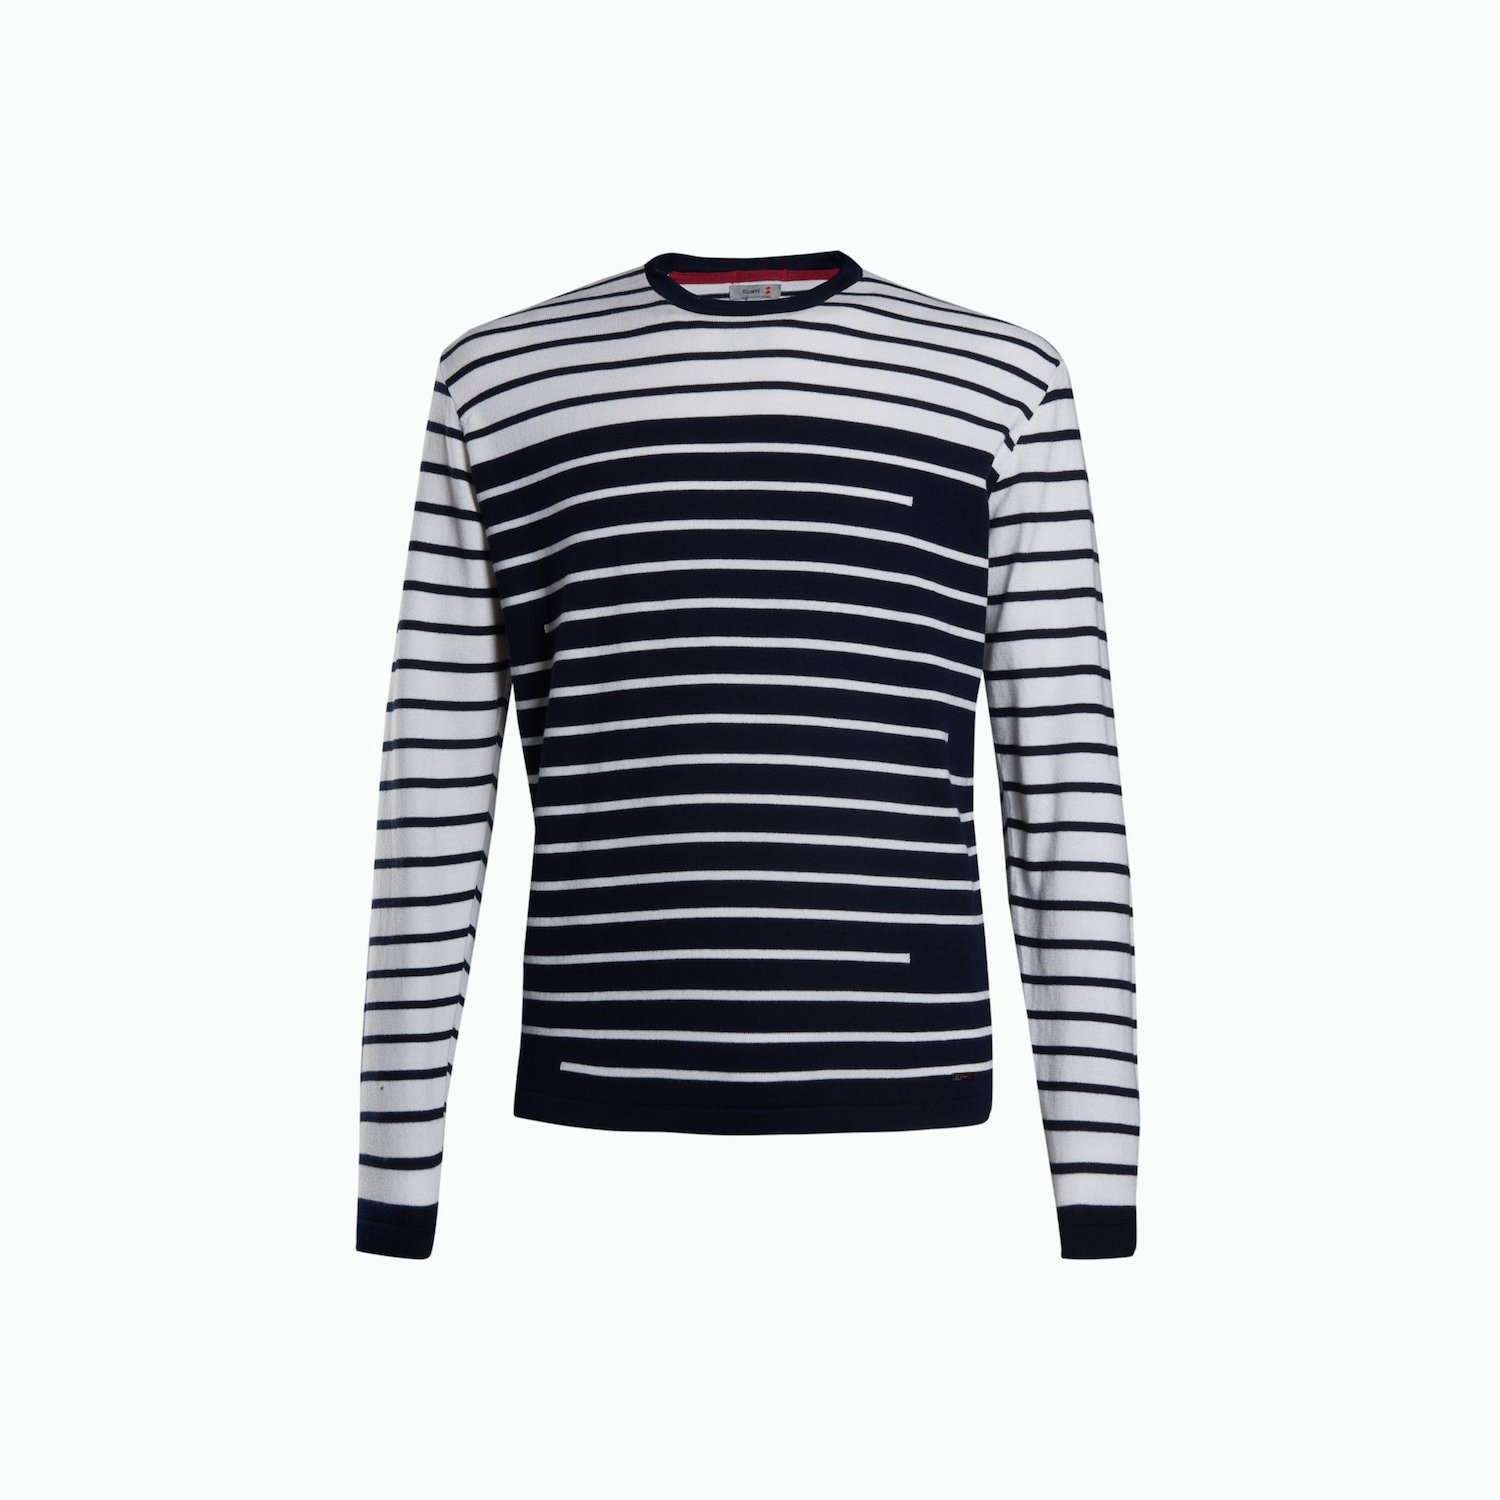 Jumper A176 - Navy / White